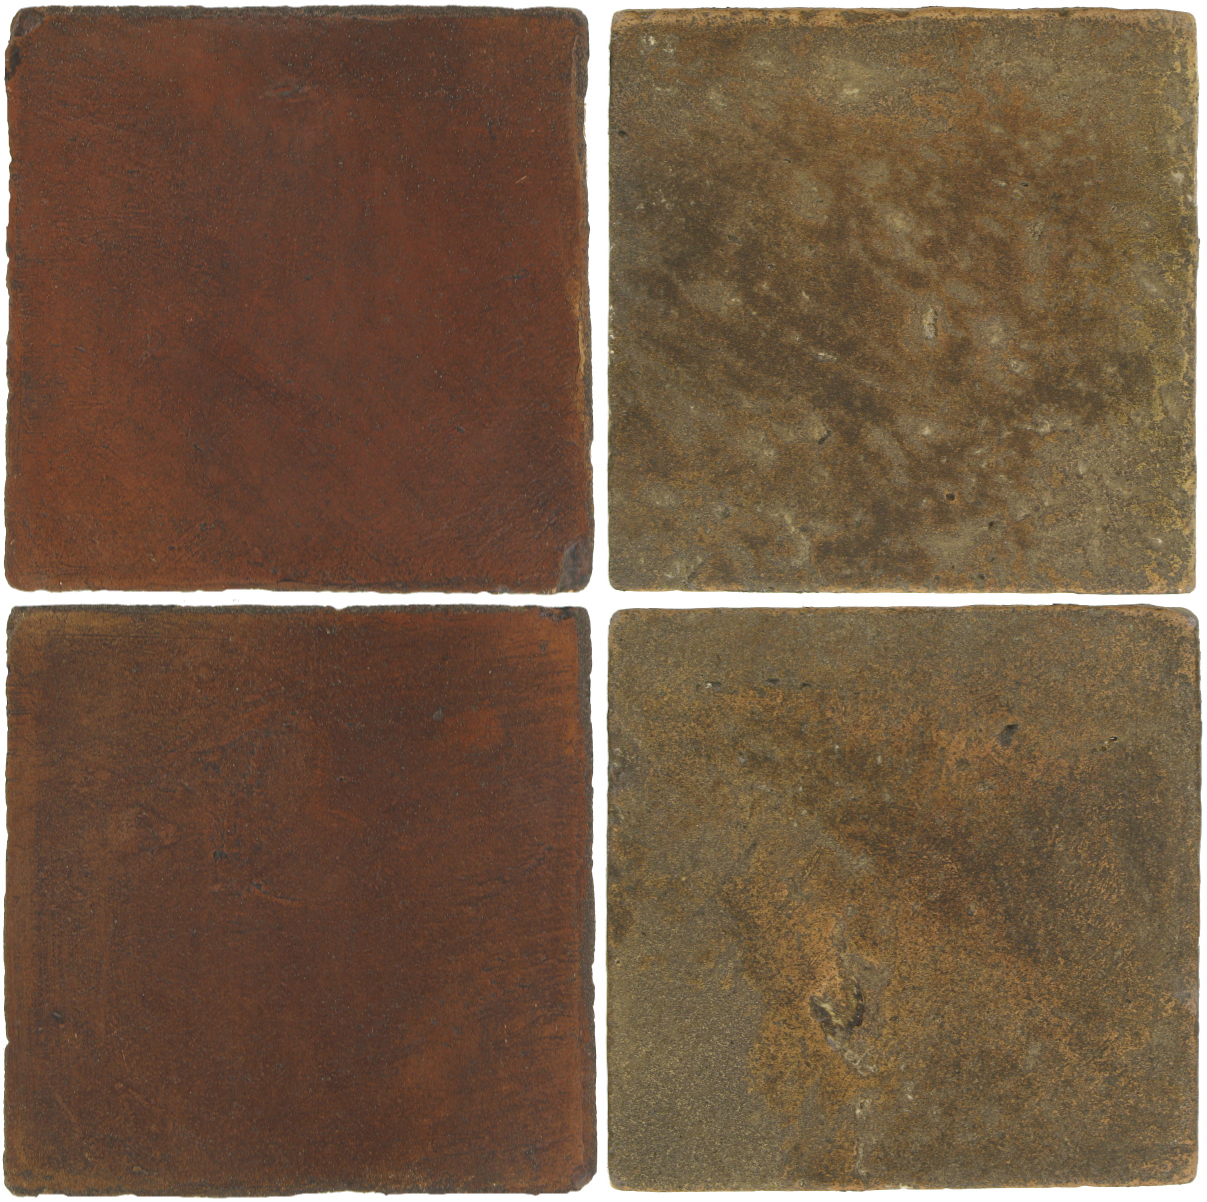 Pedralbes Antique Terracotta  2 Color Combinations  OHS-PSOW Old World + VTG-PSVN Verona Brown